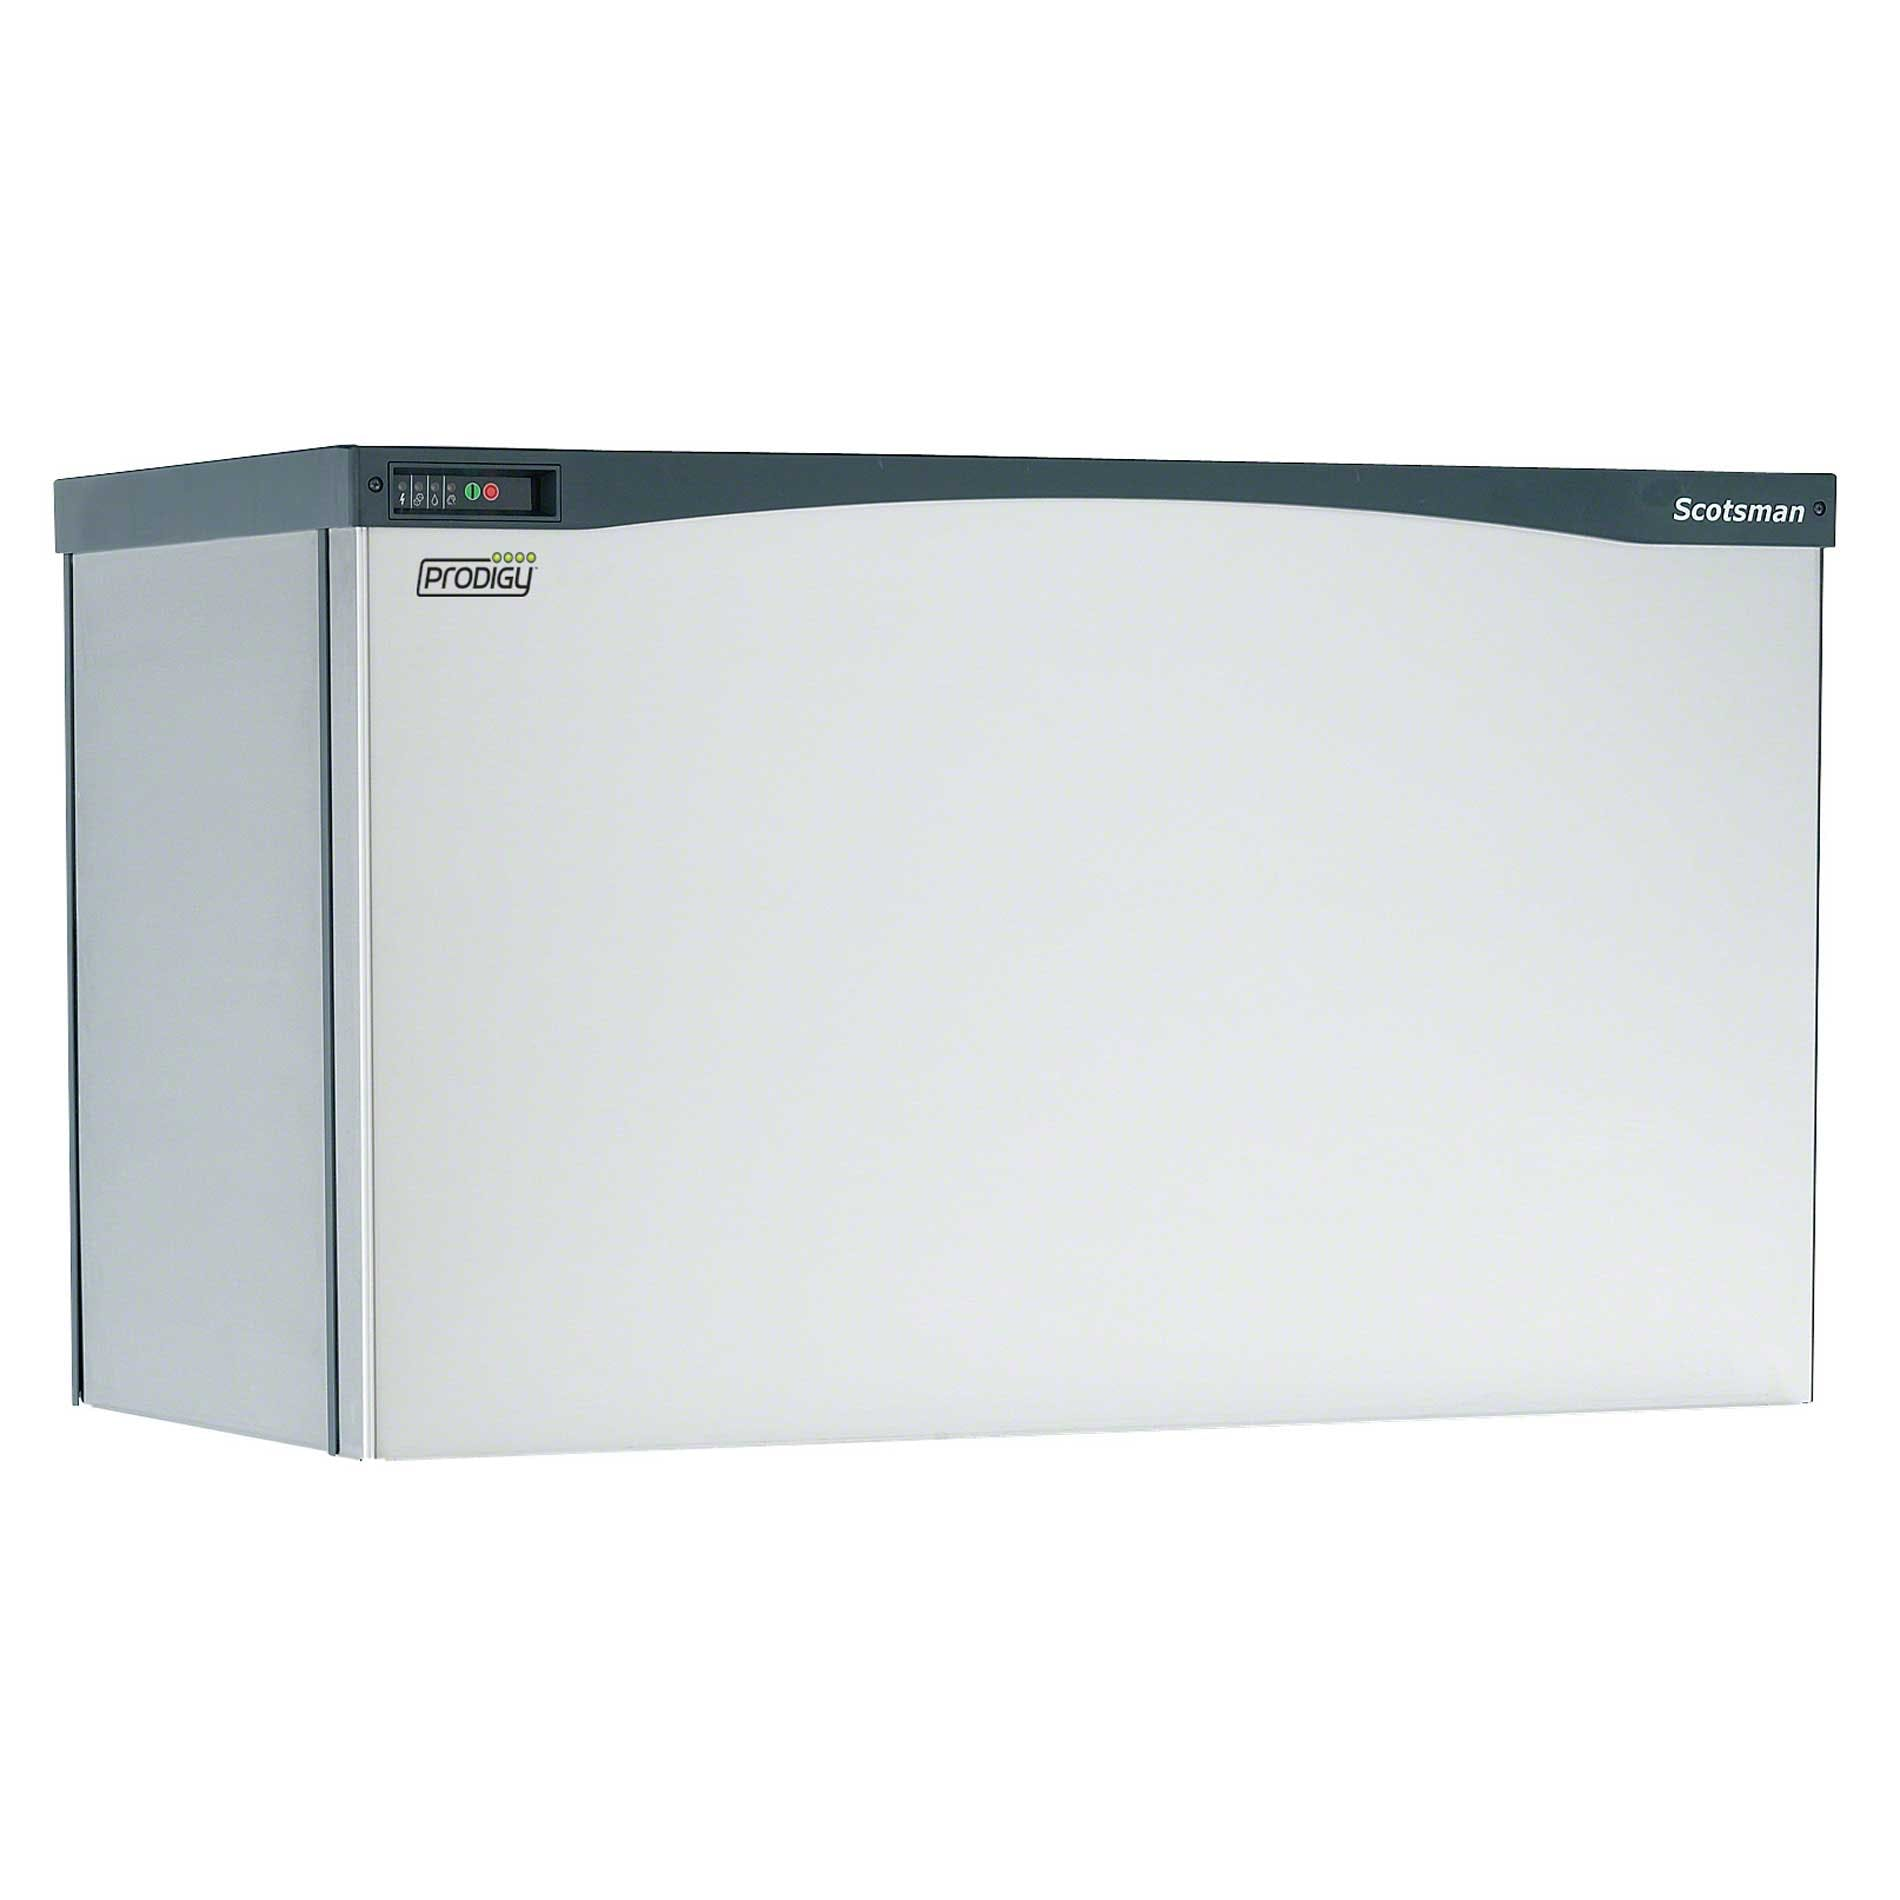 Scotsman - C1448MW-3 1400 lb Modular Cube Ice Machine - Prodigy® Series Ice machine sold by Food Service Warehouse